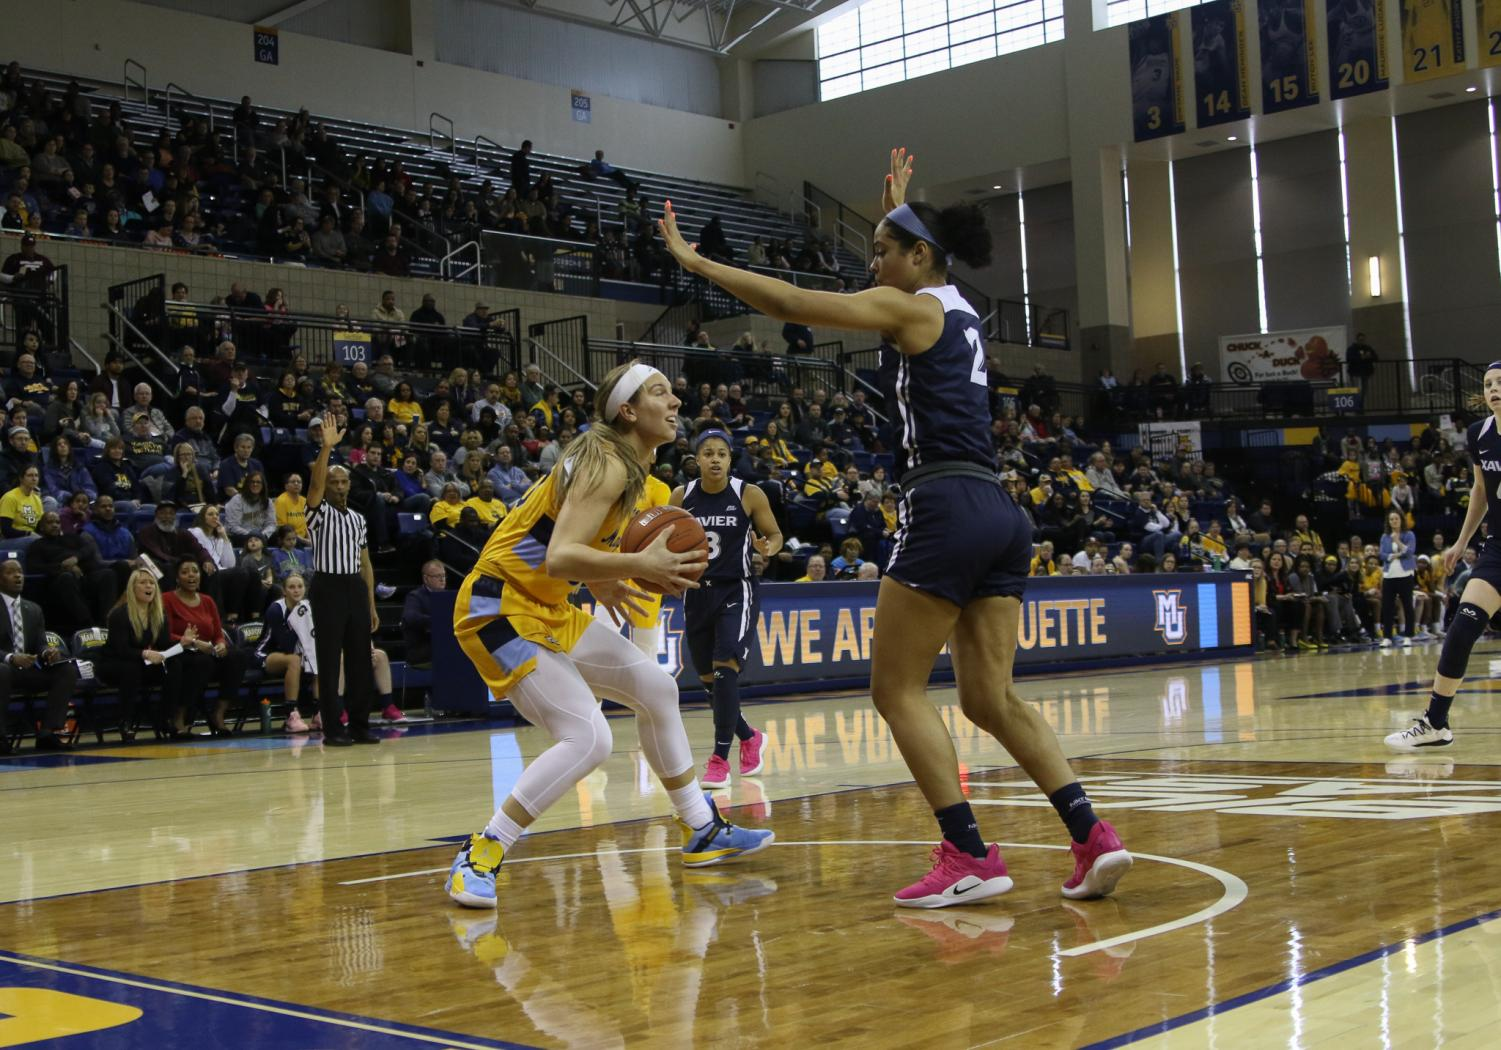 Senior Isabelle Spingola (30) lead the Golden Eagles with a season-high 20 points in Marquette's 20-point win over Xavier Sunday afternoon. (Marquette Wire stock photo.)